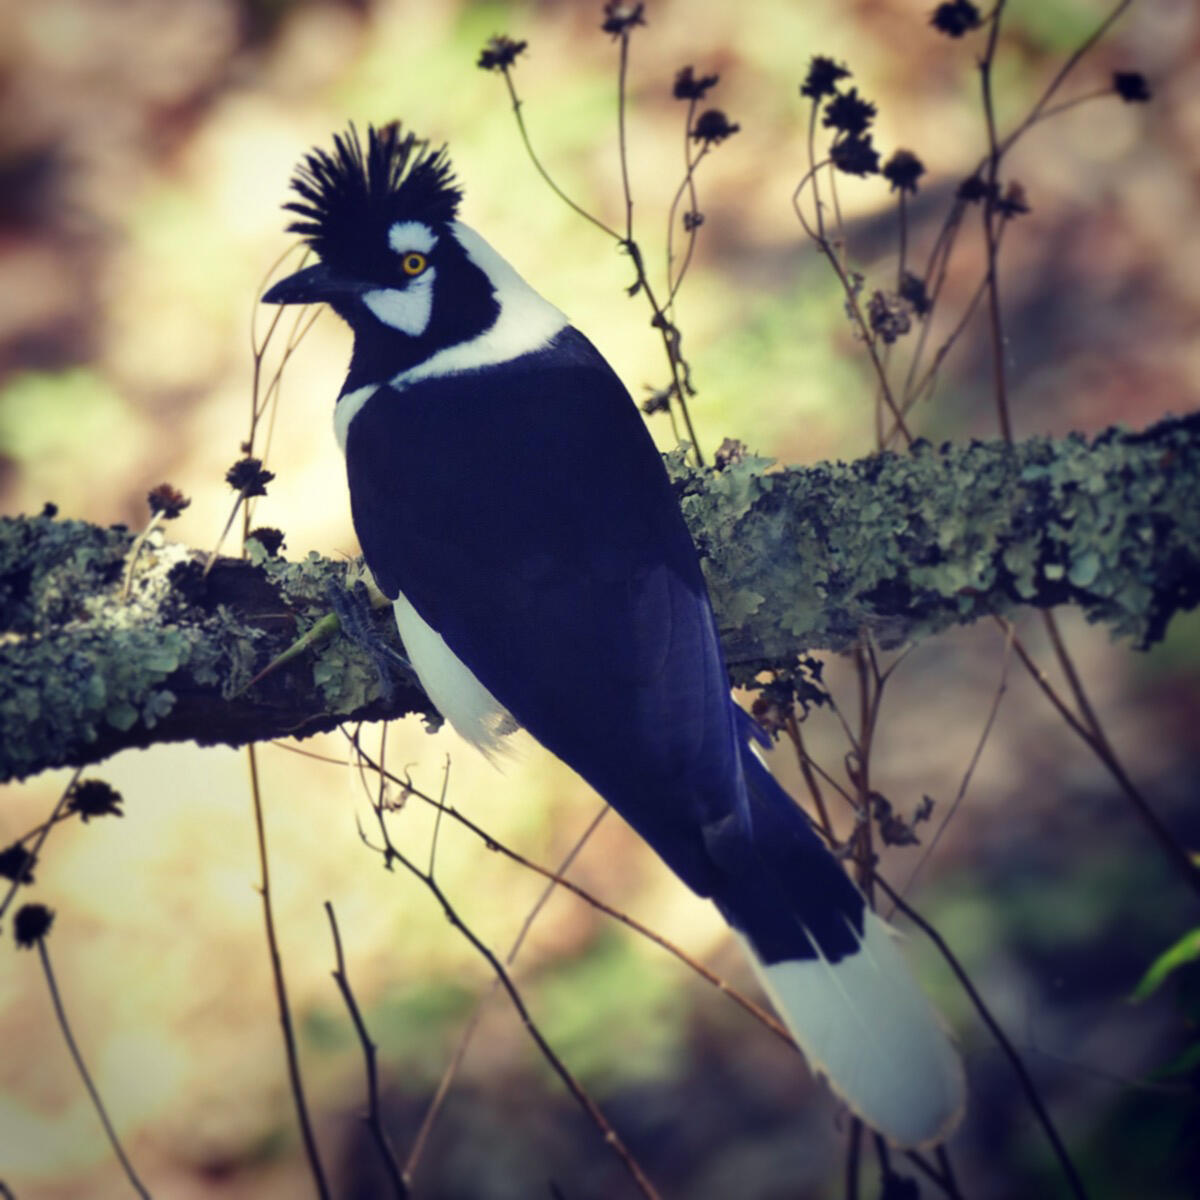 A Tufted Jay pauses in the Tufted Jay Preserve. Noah Strycker